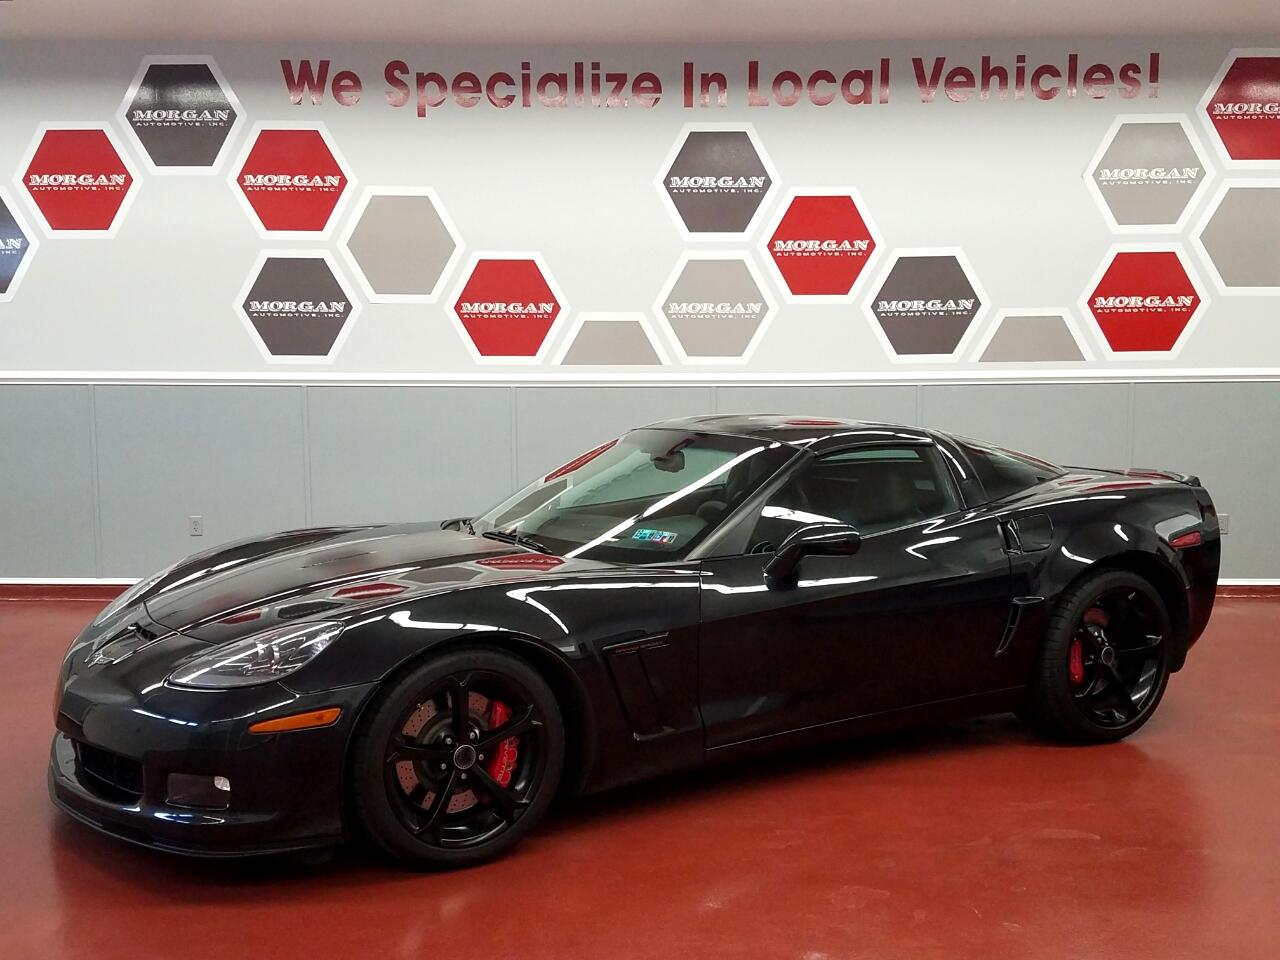 2012 Chevrolet Corvette Centennial Edition Grand Sport Coupe w/3LT